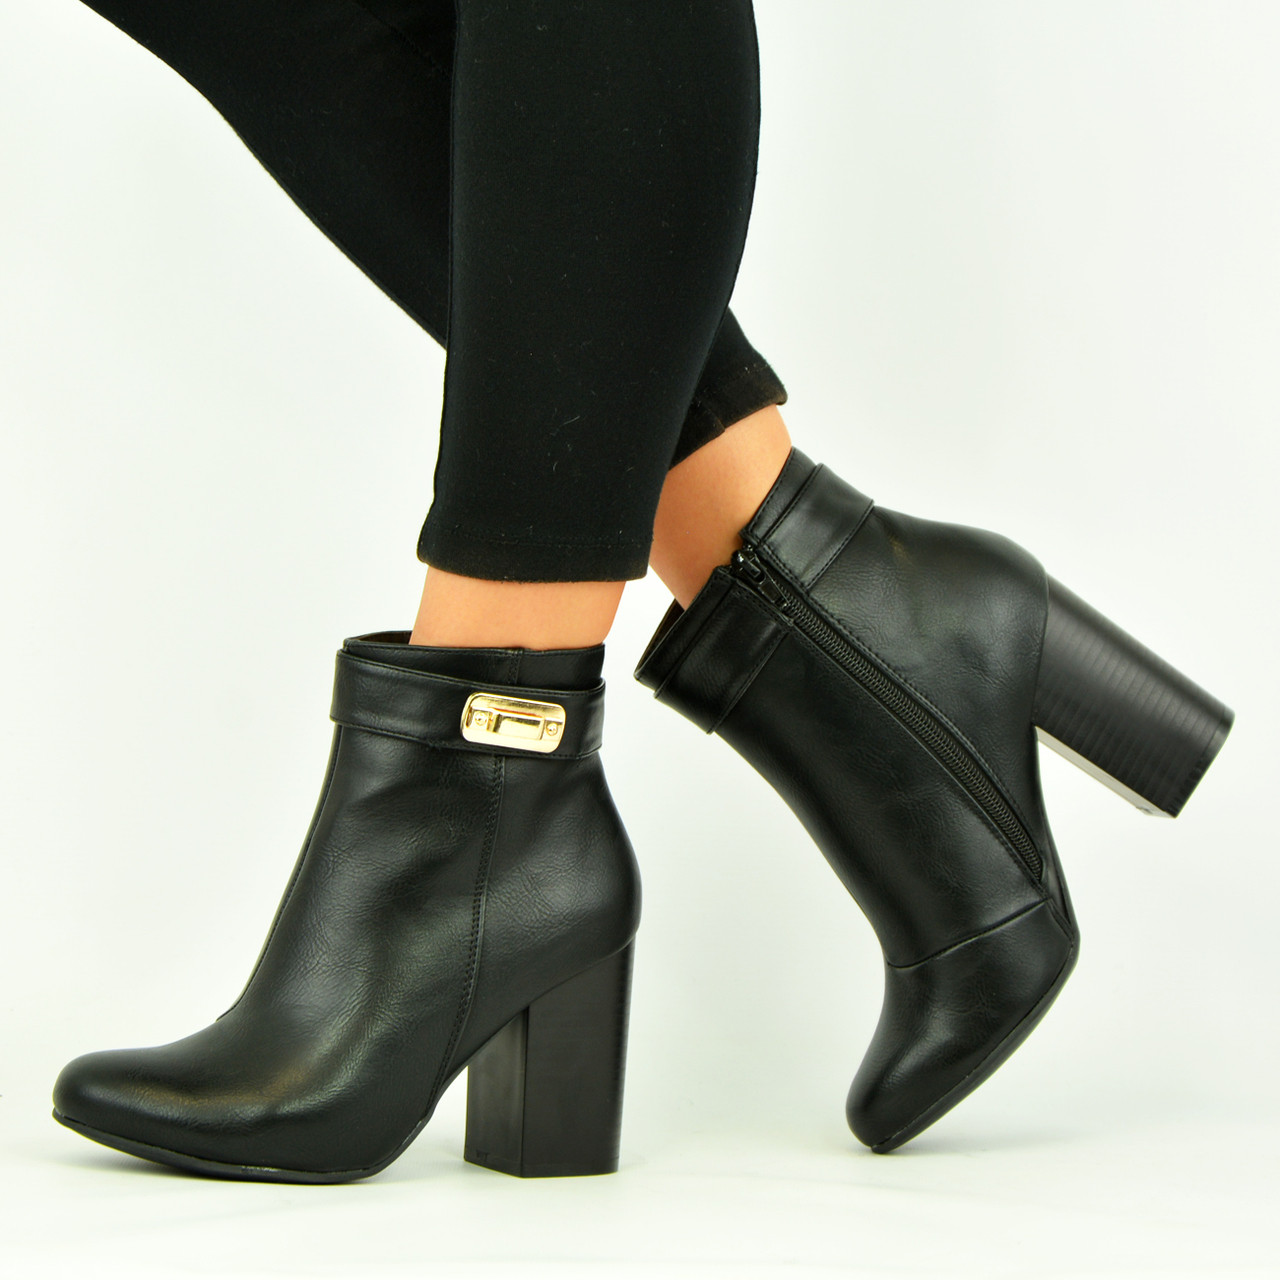 New Womens Ladies Ankle Boots High Block Heel Casual Smart Zip Shoes Size 3-8